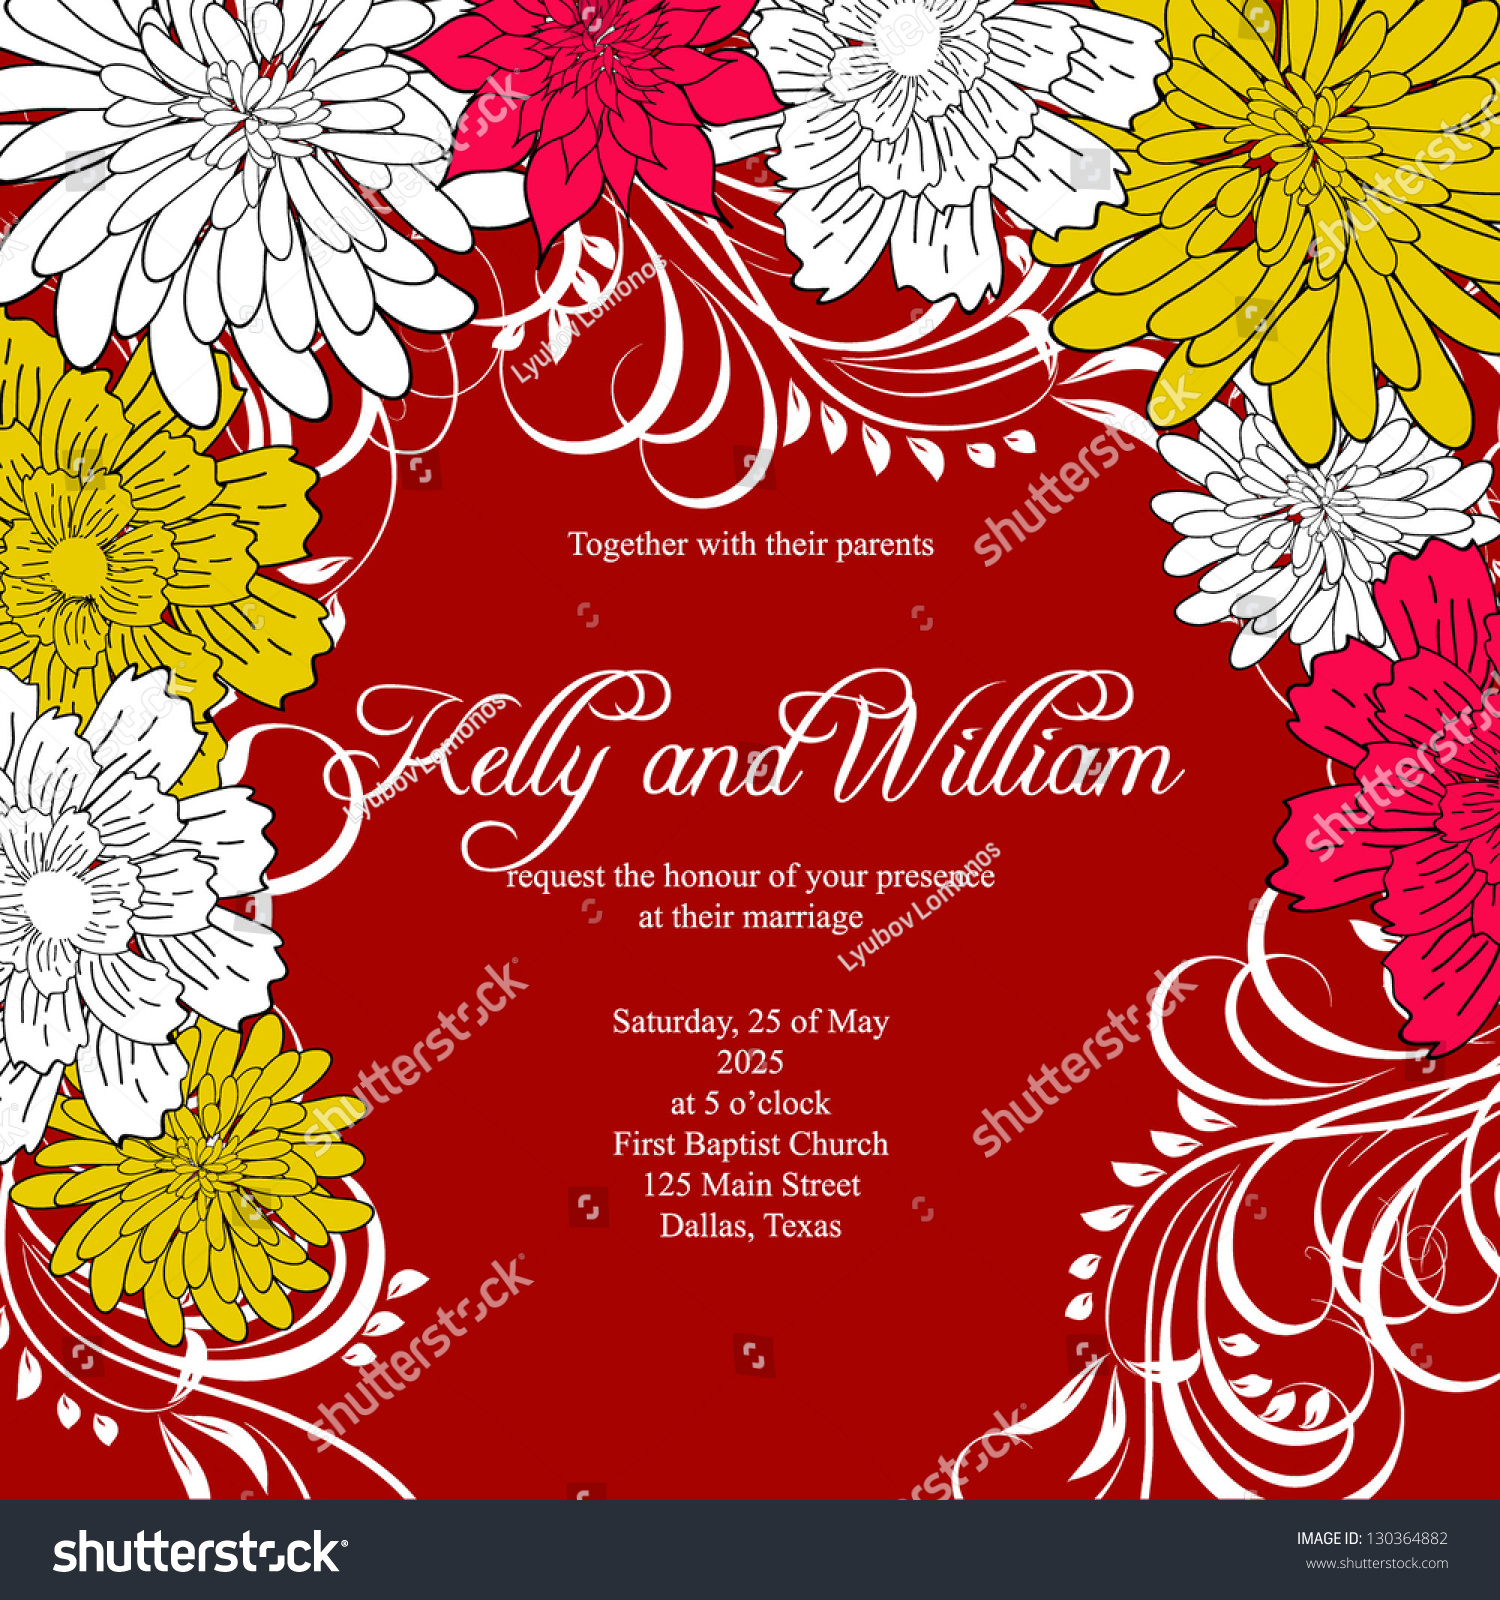 Invitation Wedding Card Abstract Floral Background Stock Vector ...